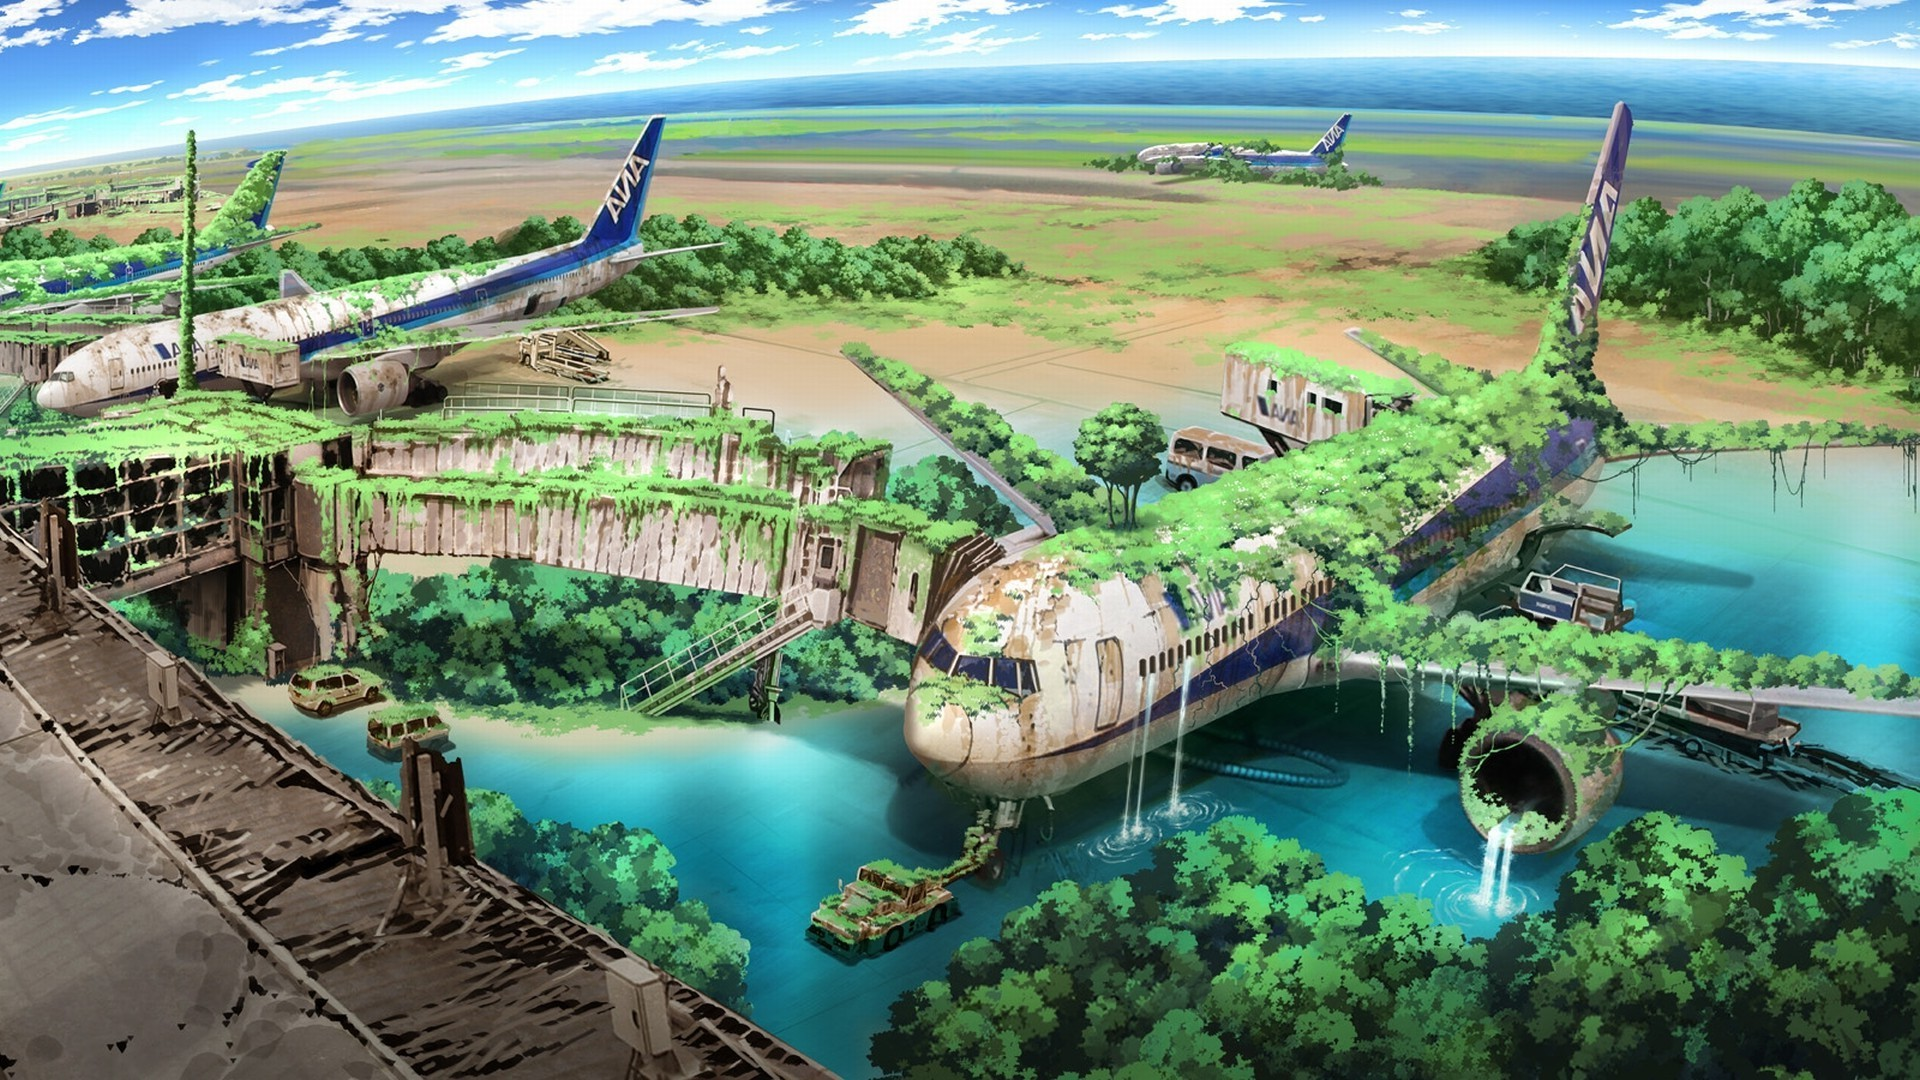 anime nature landscape drawing airplane aircraft wallpapers apocalyptic sky backgrounds desktop px mobile background tags wallup